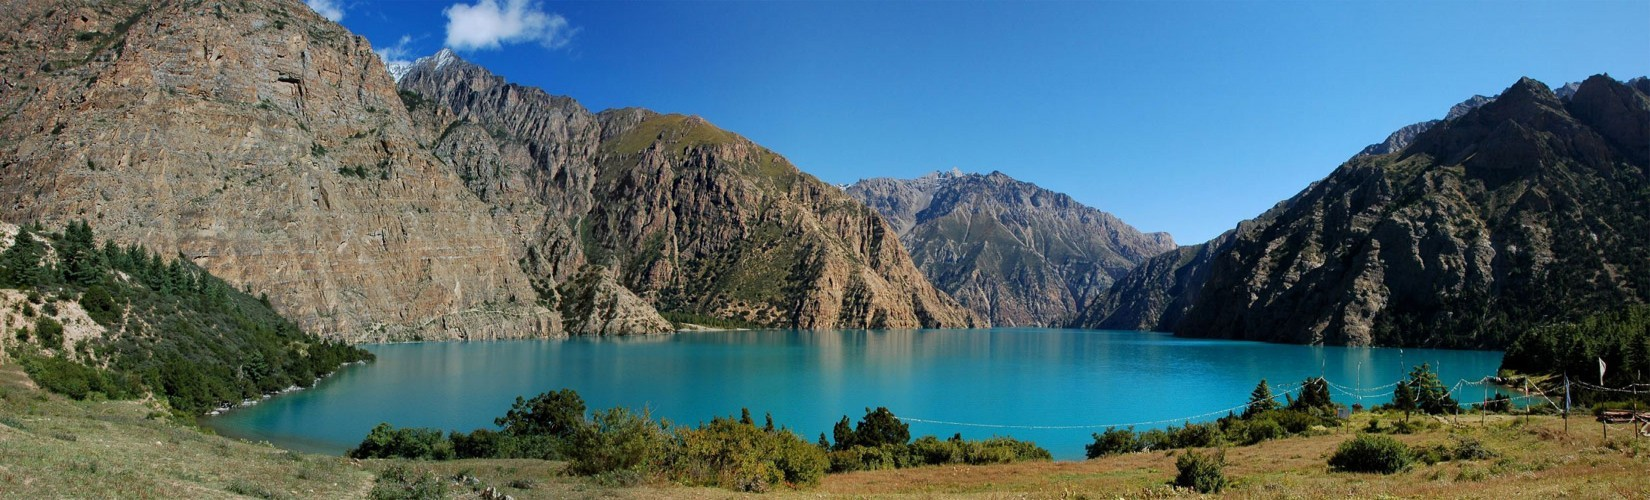 lower dolpa trek-Phoksundo lake alpine fresh blue crystal water